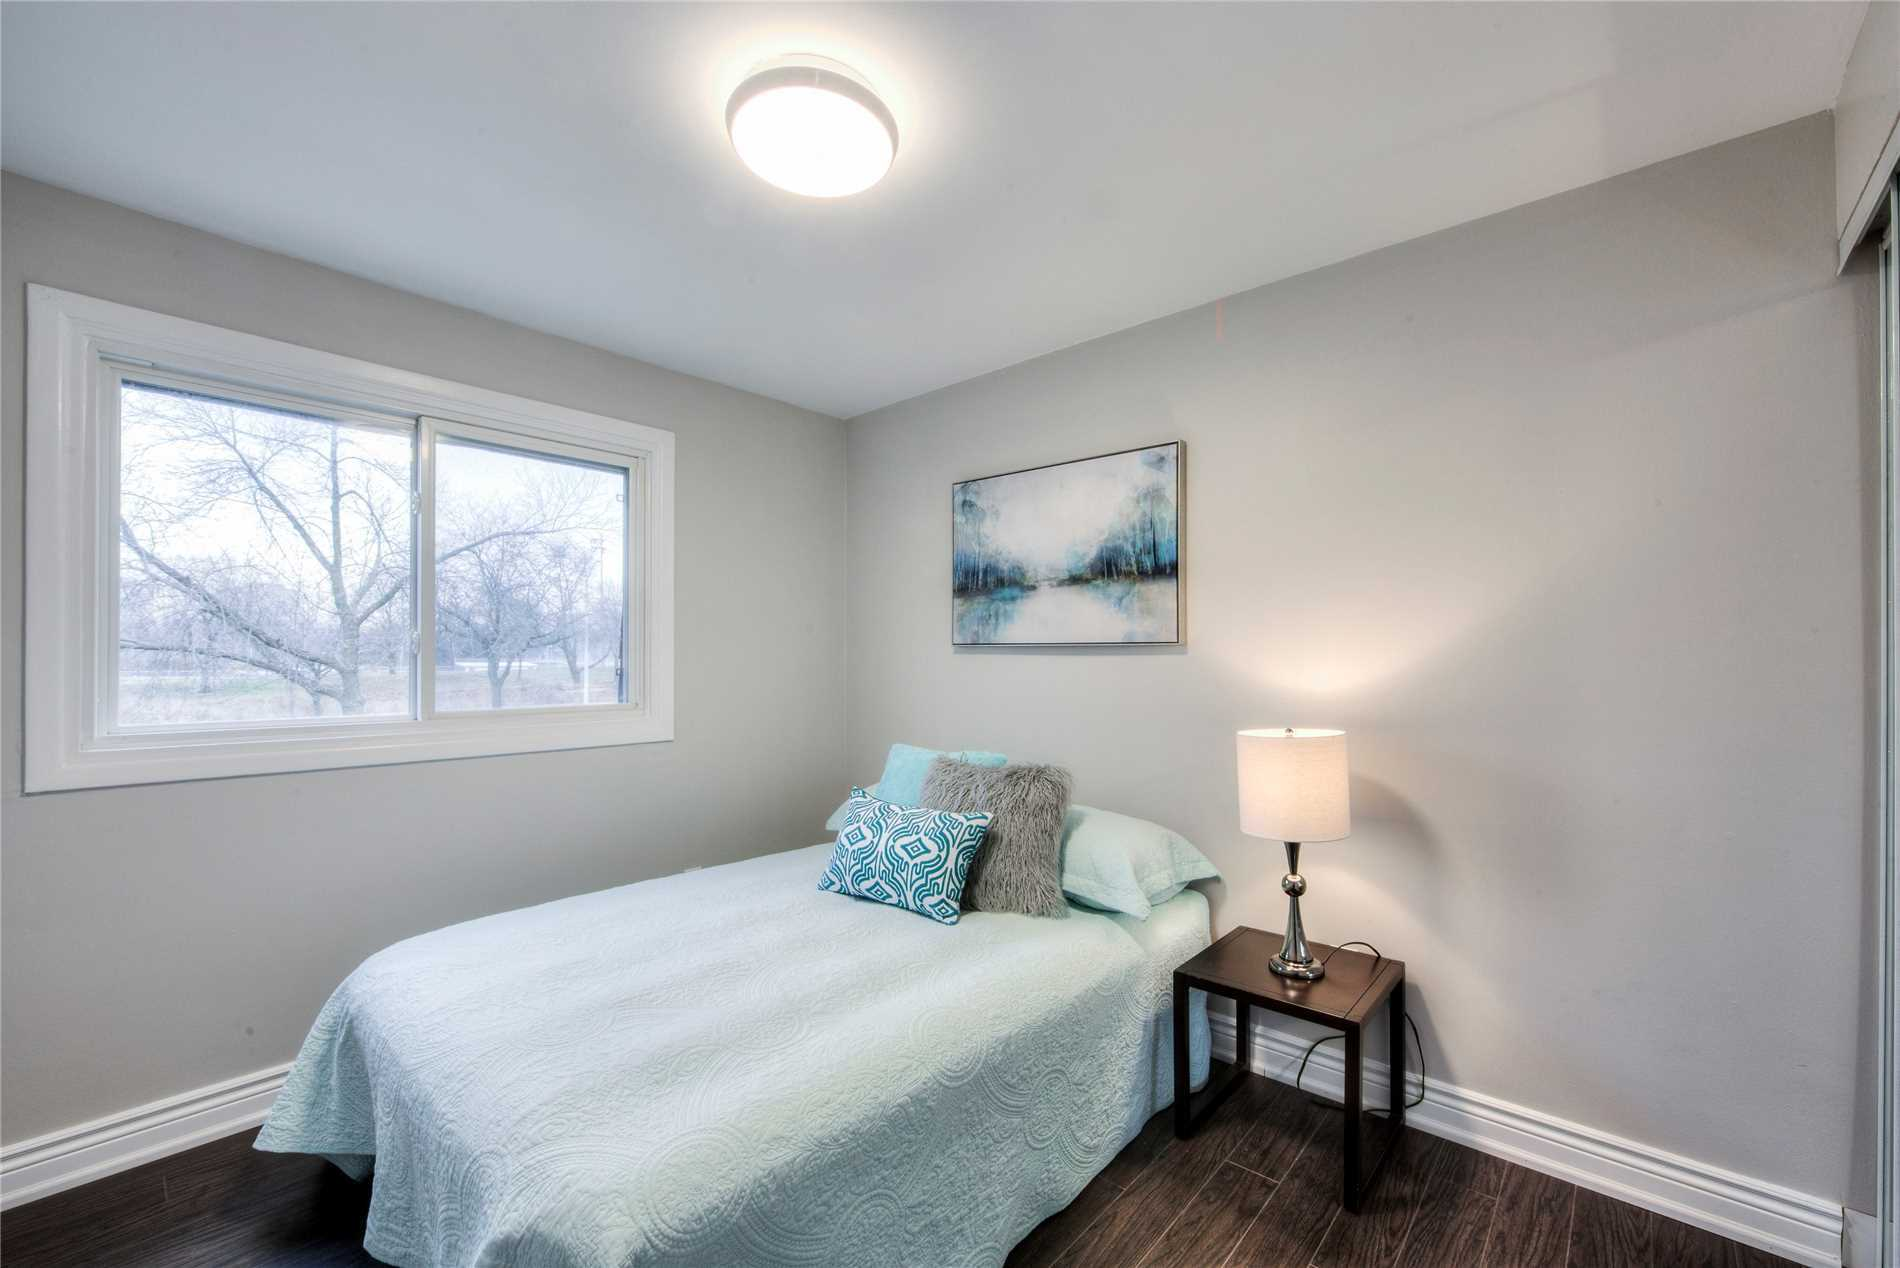 #84 - 3395 Cliff Rd, Mississauga W4325408